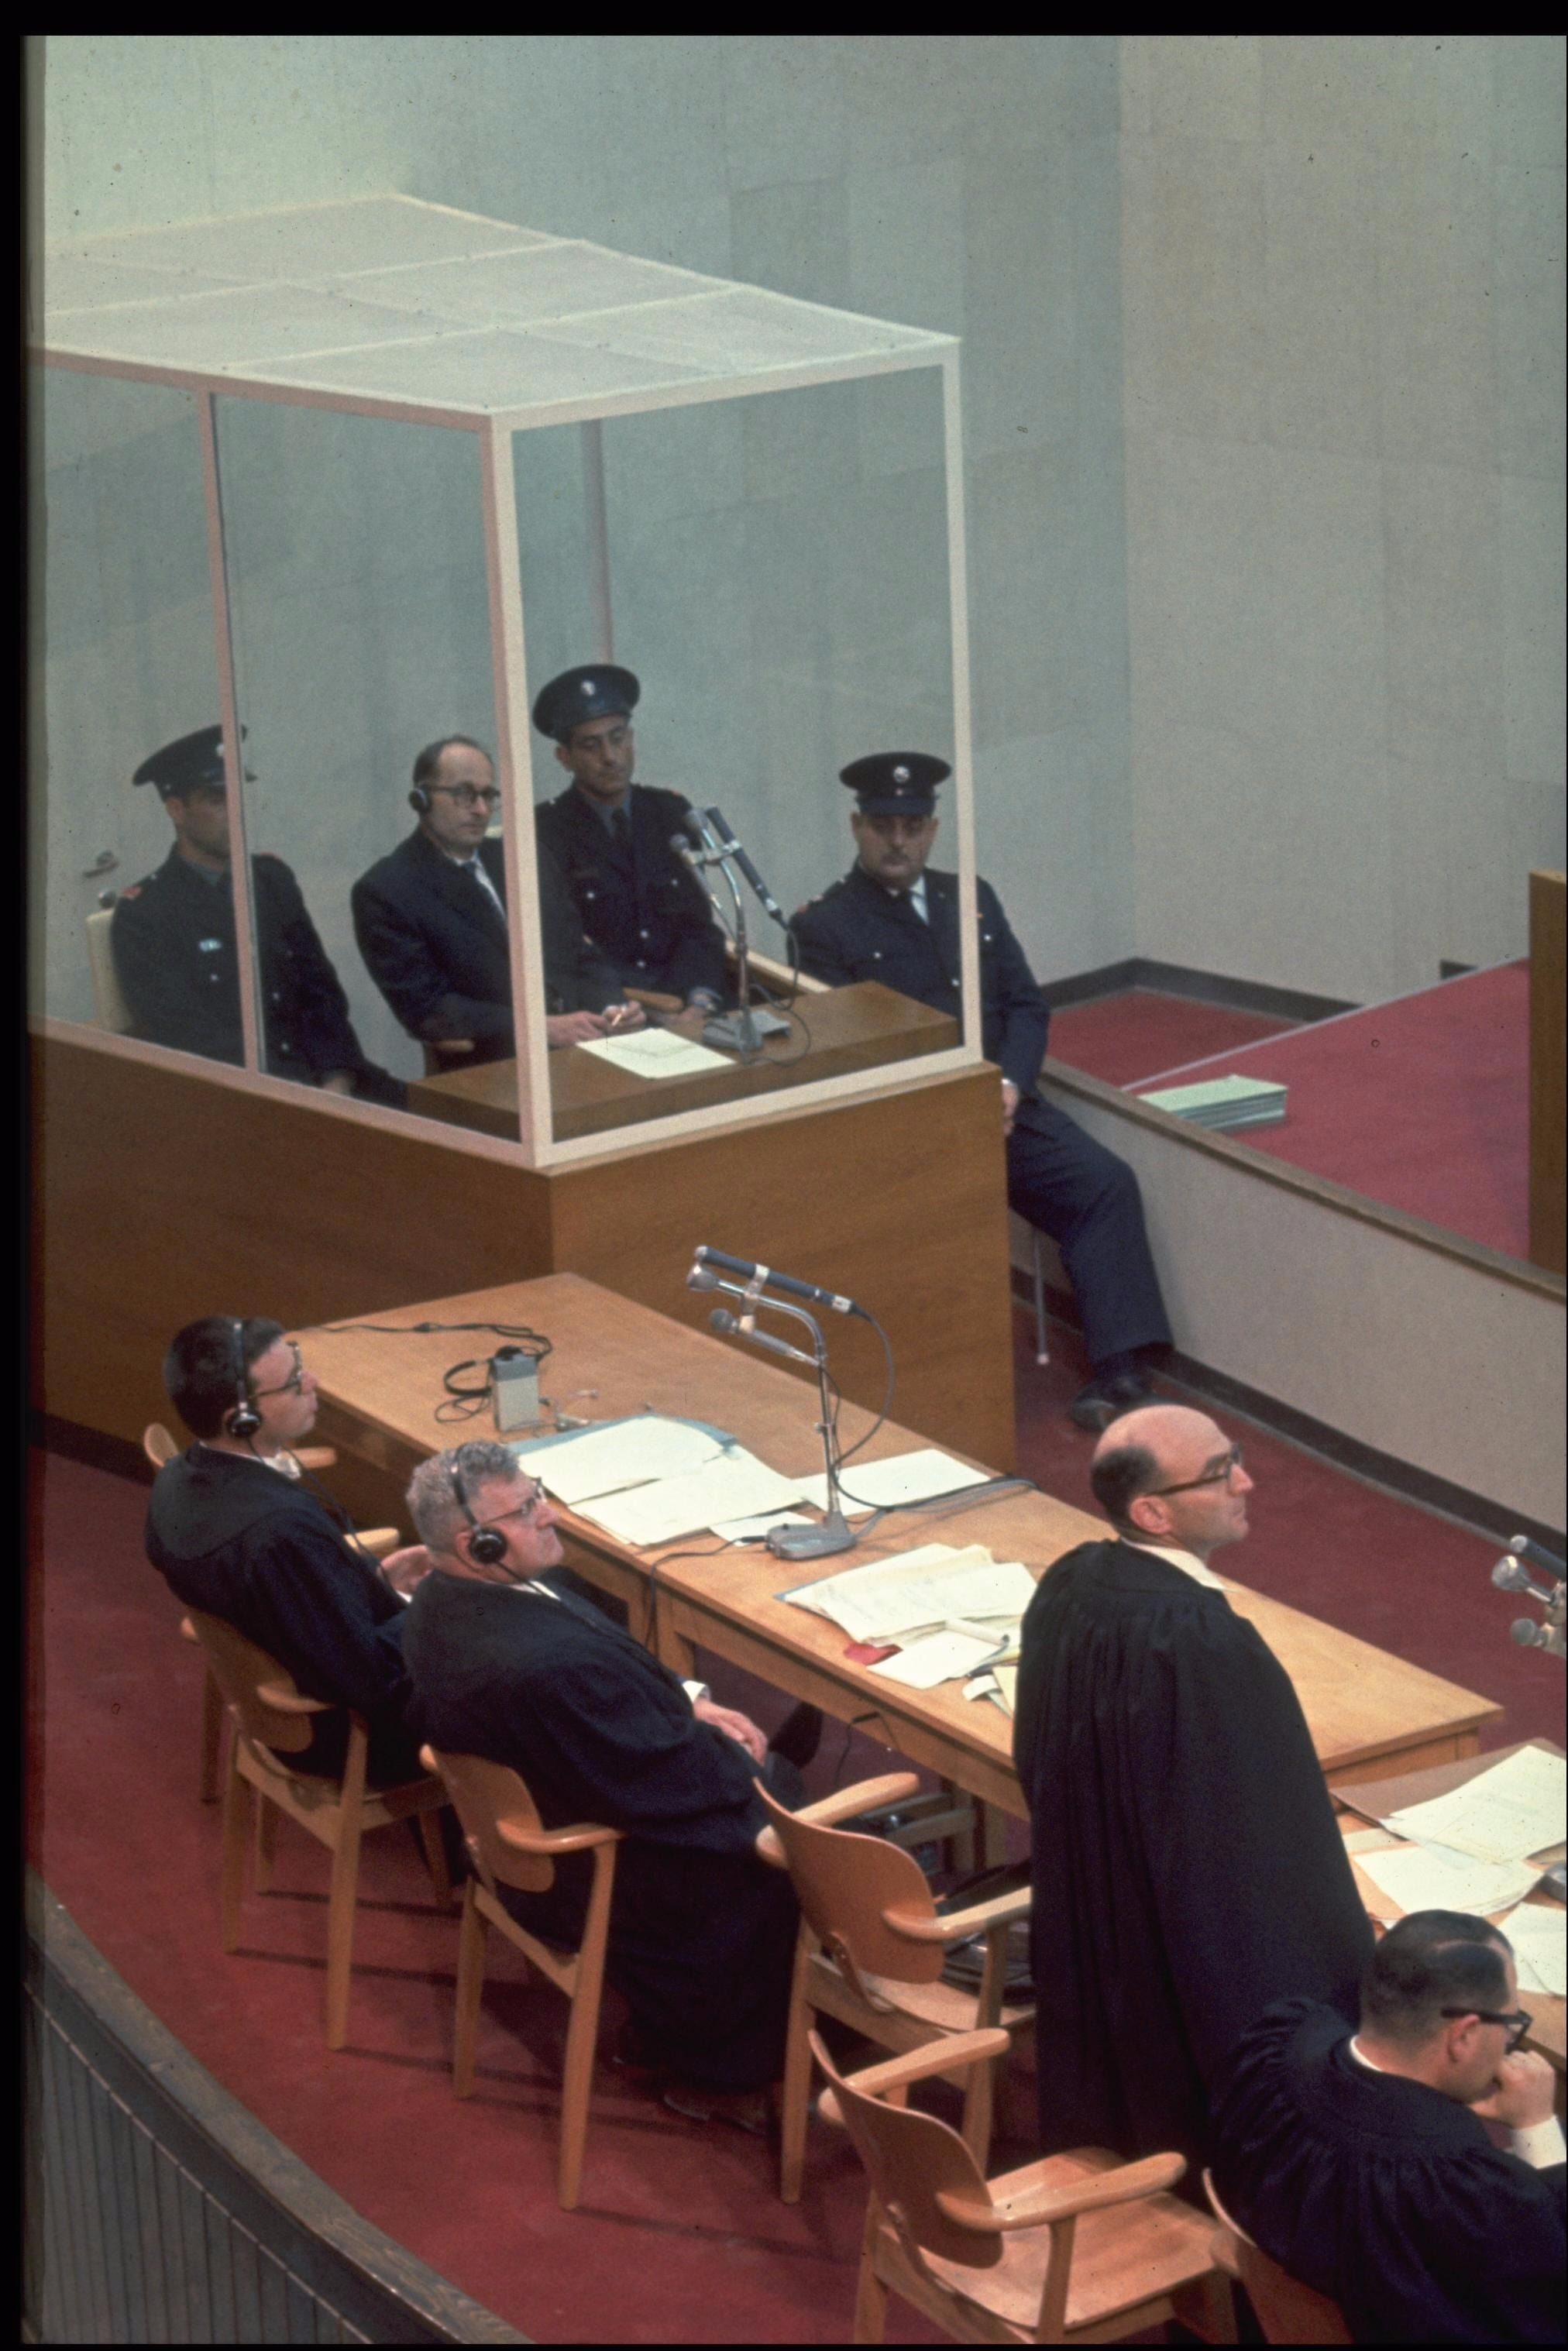 An image from the 1961 trial of Adolf Eichmann.